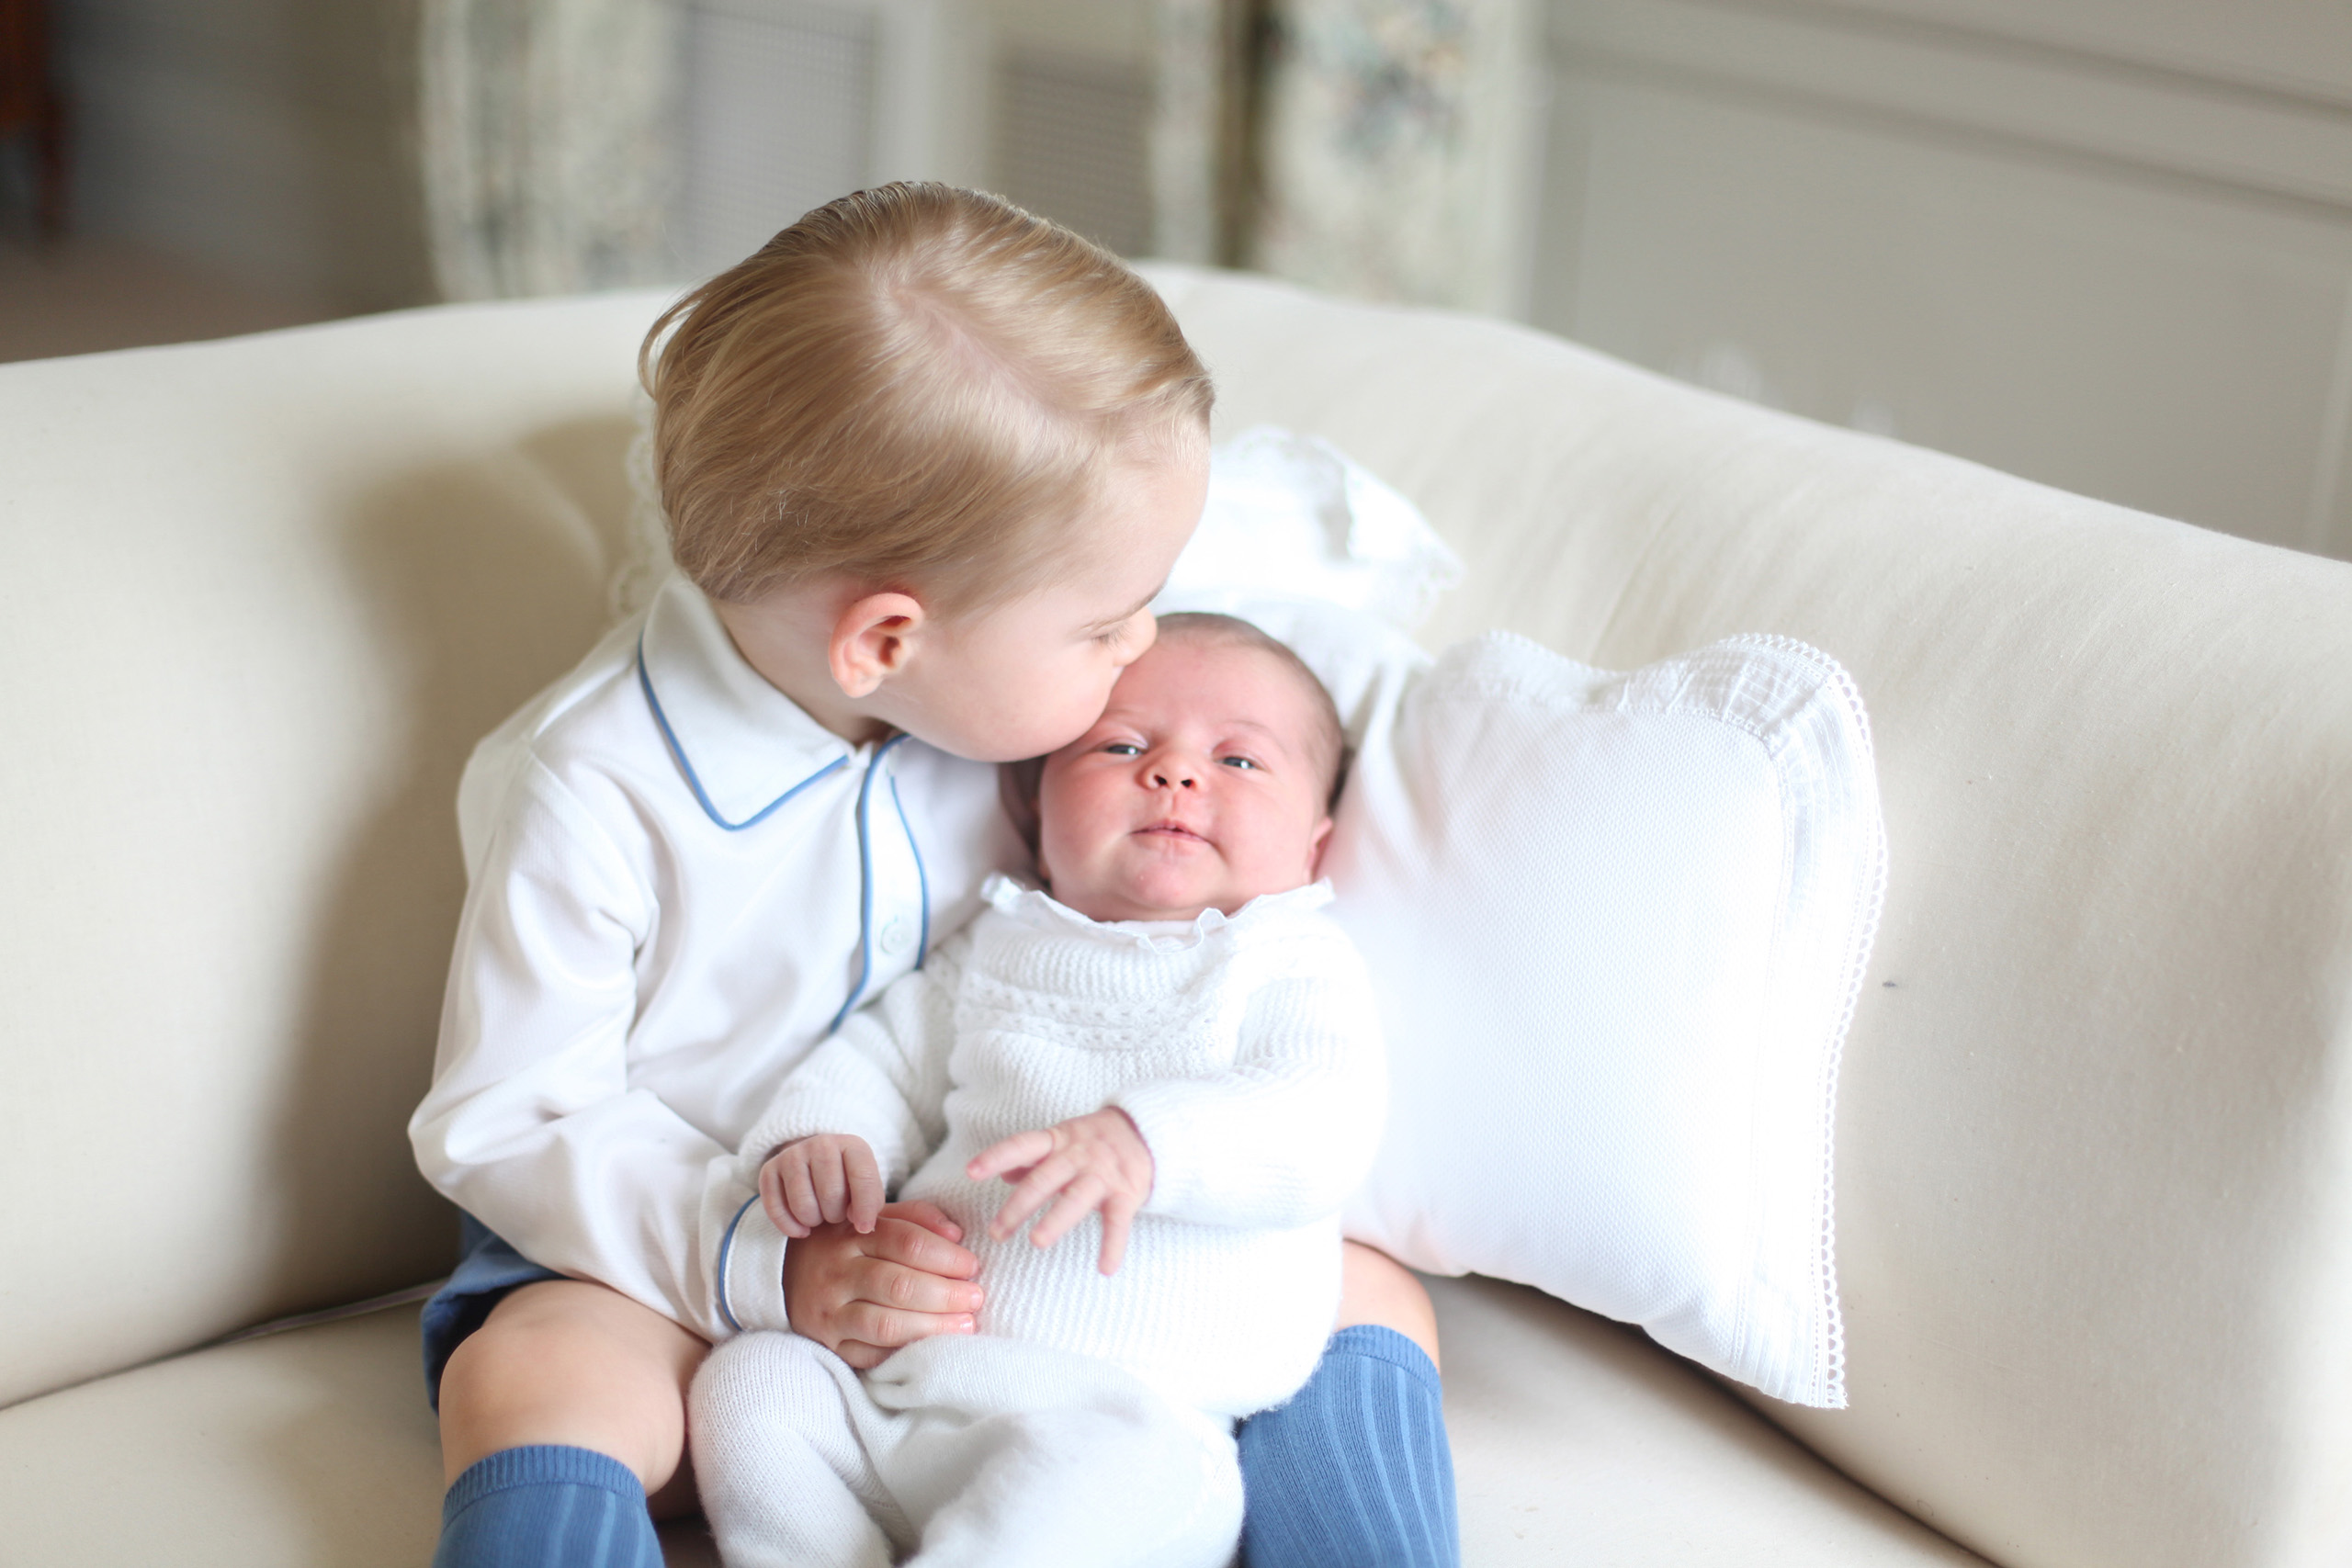 Prince George and Princess Charlotte in a photo taken by the Duchess in mid-May at Anmer Hall in Norfolk and released on June 6, 2015.